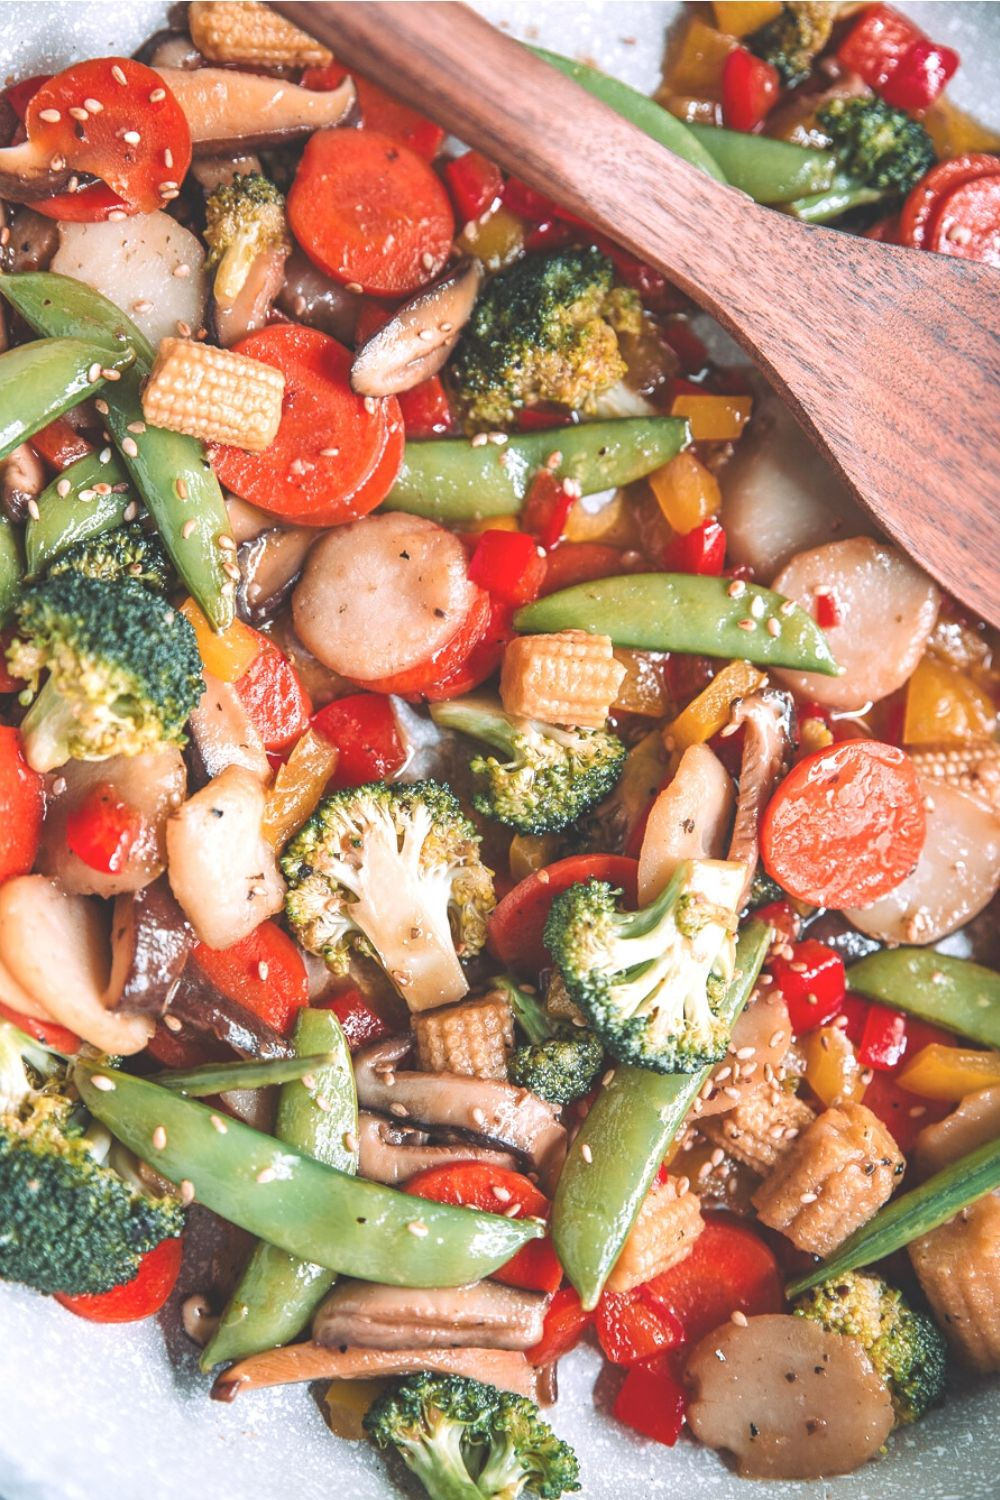 Shiitake Ginger Stir Fry| Quick and easy weeknight dinner made with fresh vegetables and full of flavor with Drew's Organics Shiitake Ginger Dressing and Marinade-by Mash & Spread. #recipe #food #stirfry #dinner #vegetables